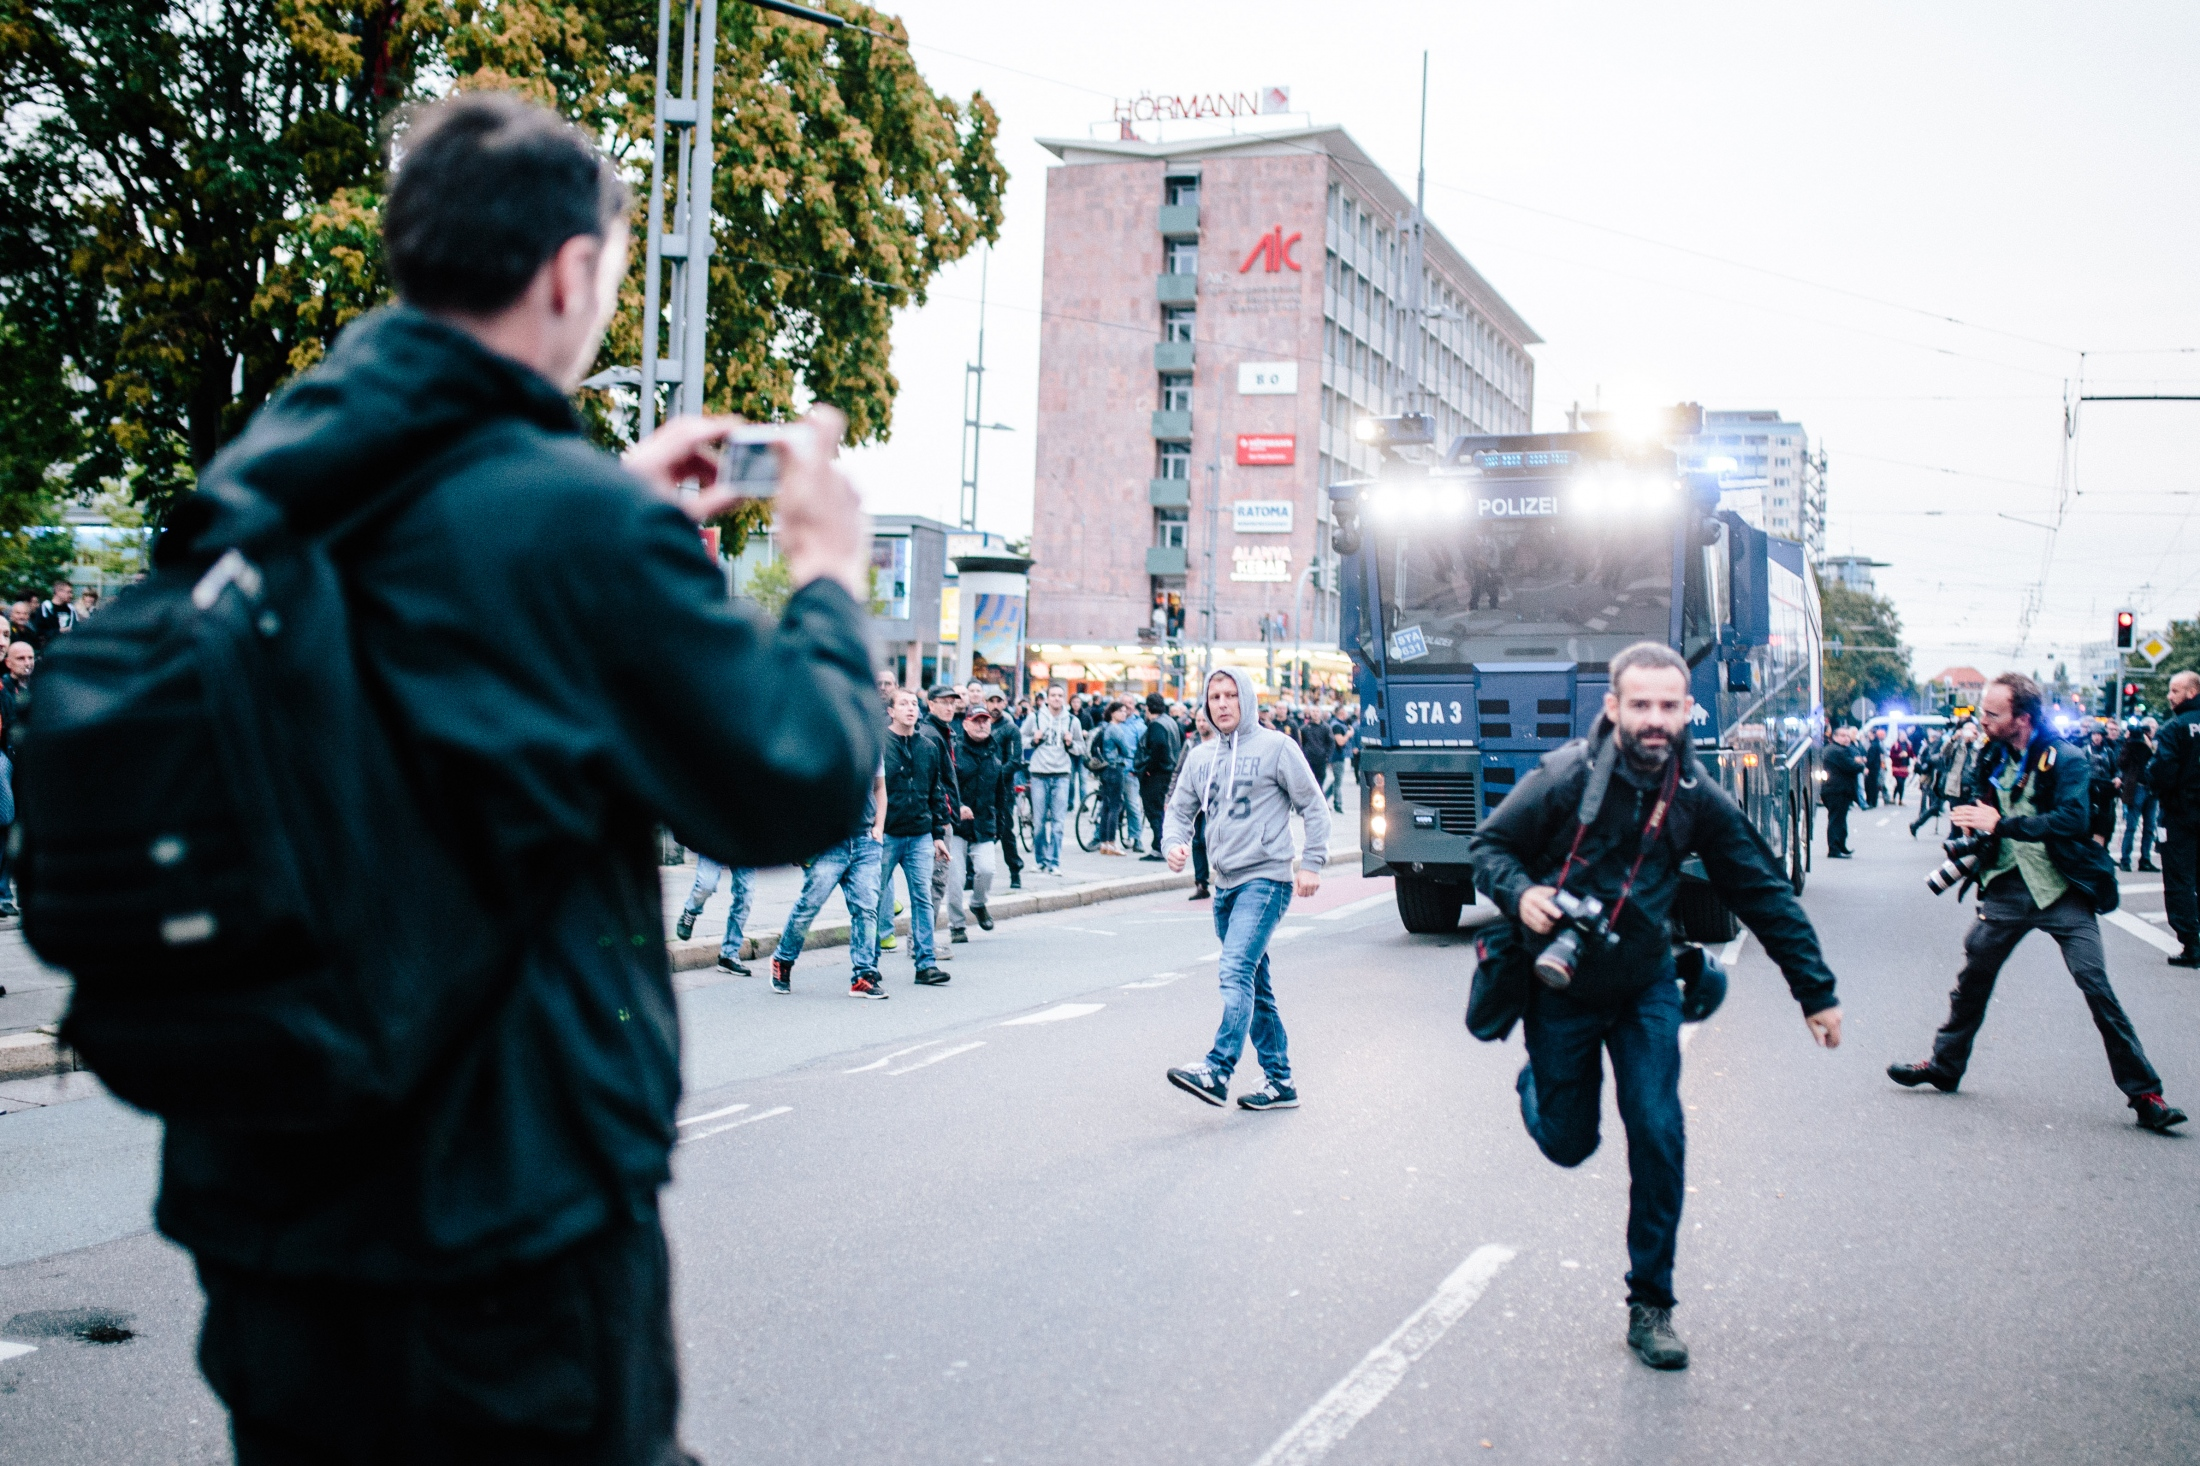 Journalist running away after attack by protester.